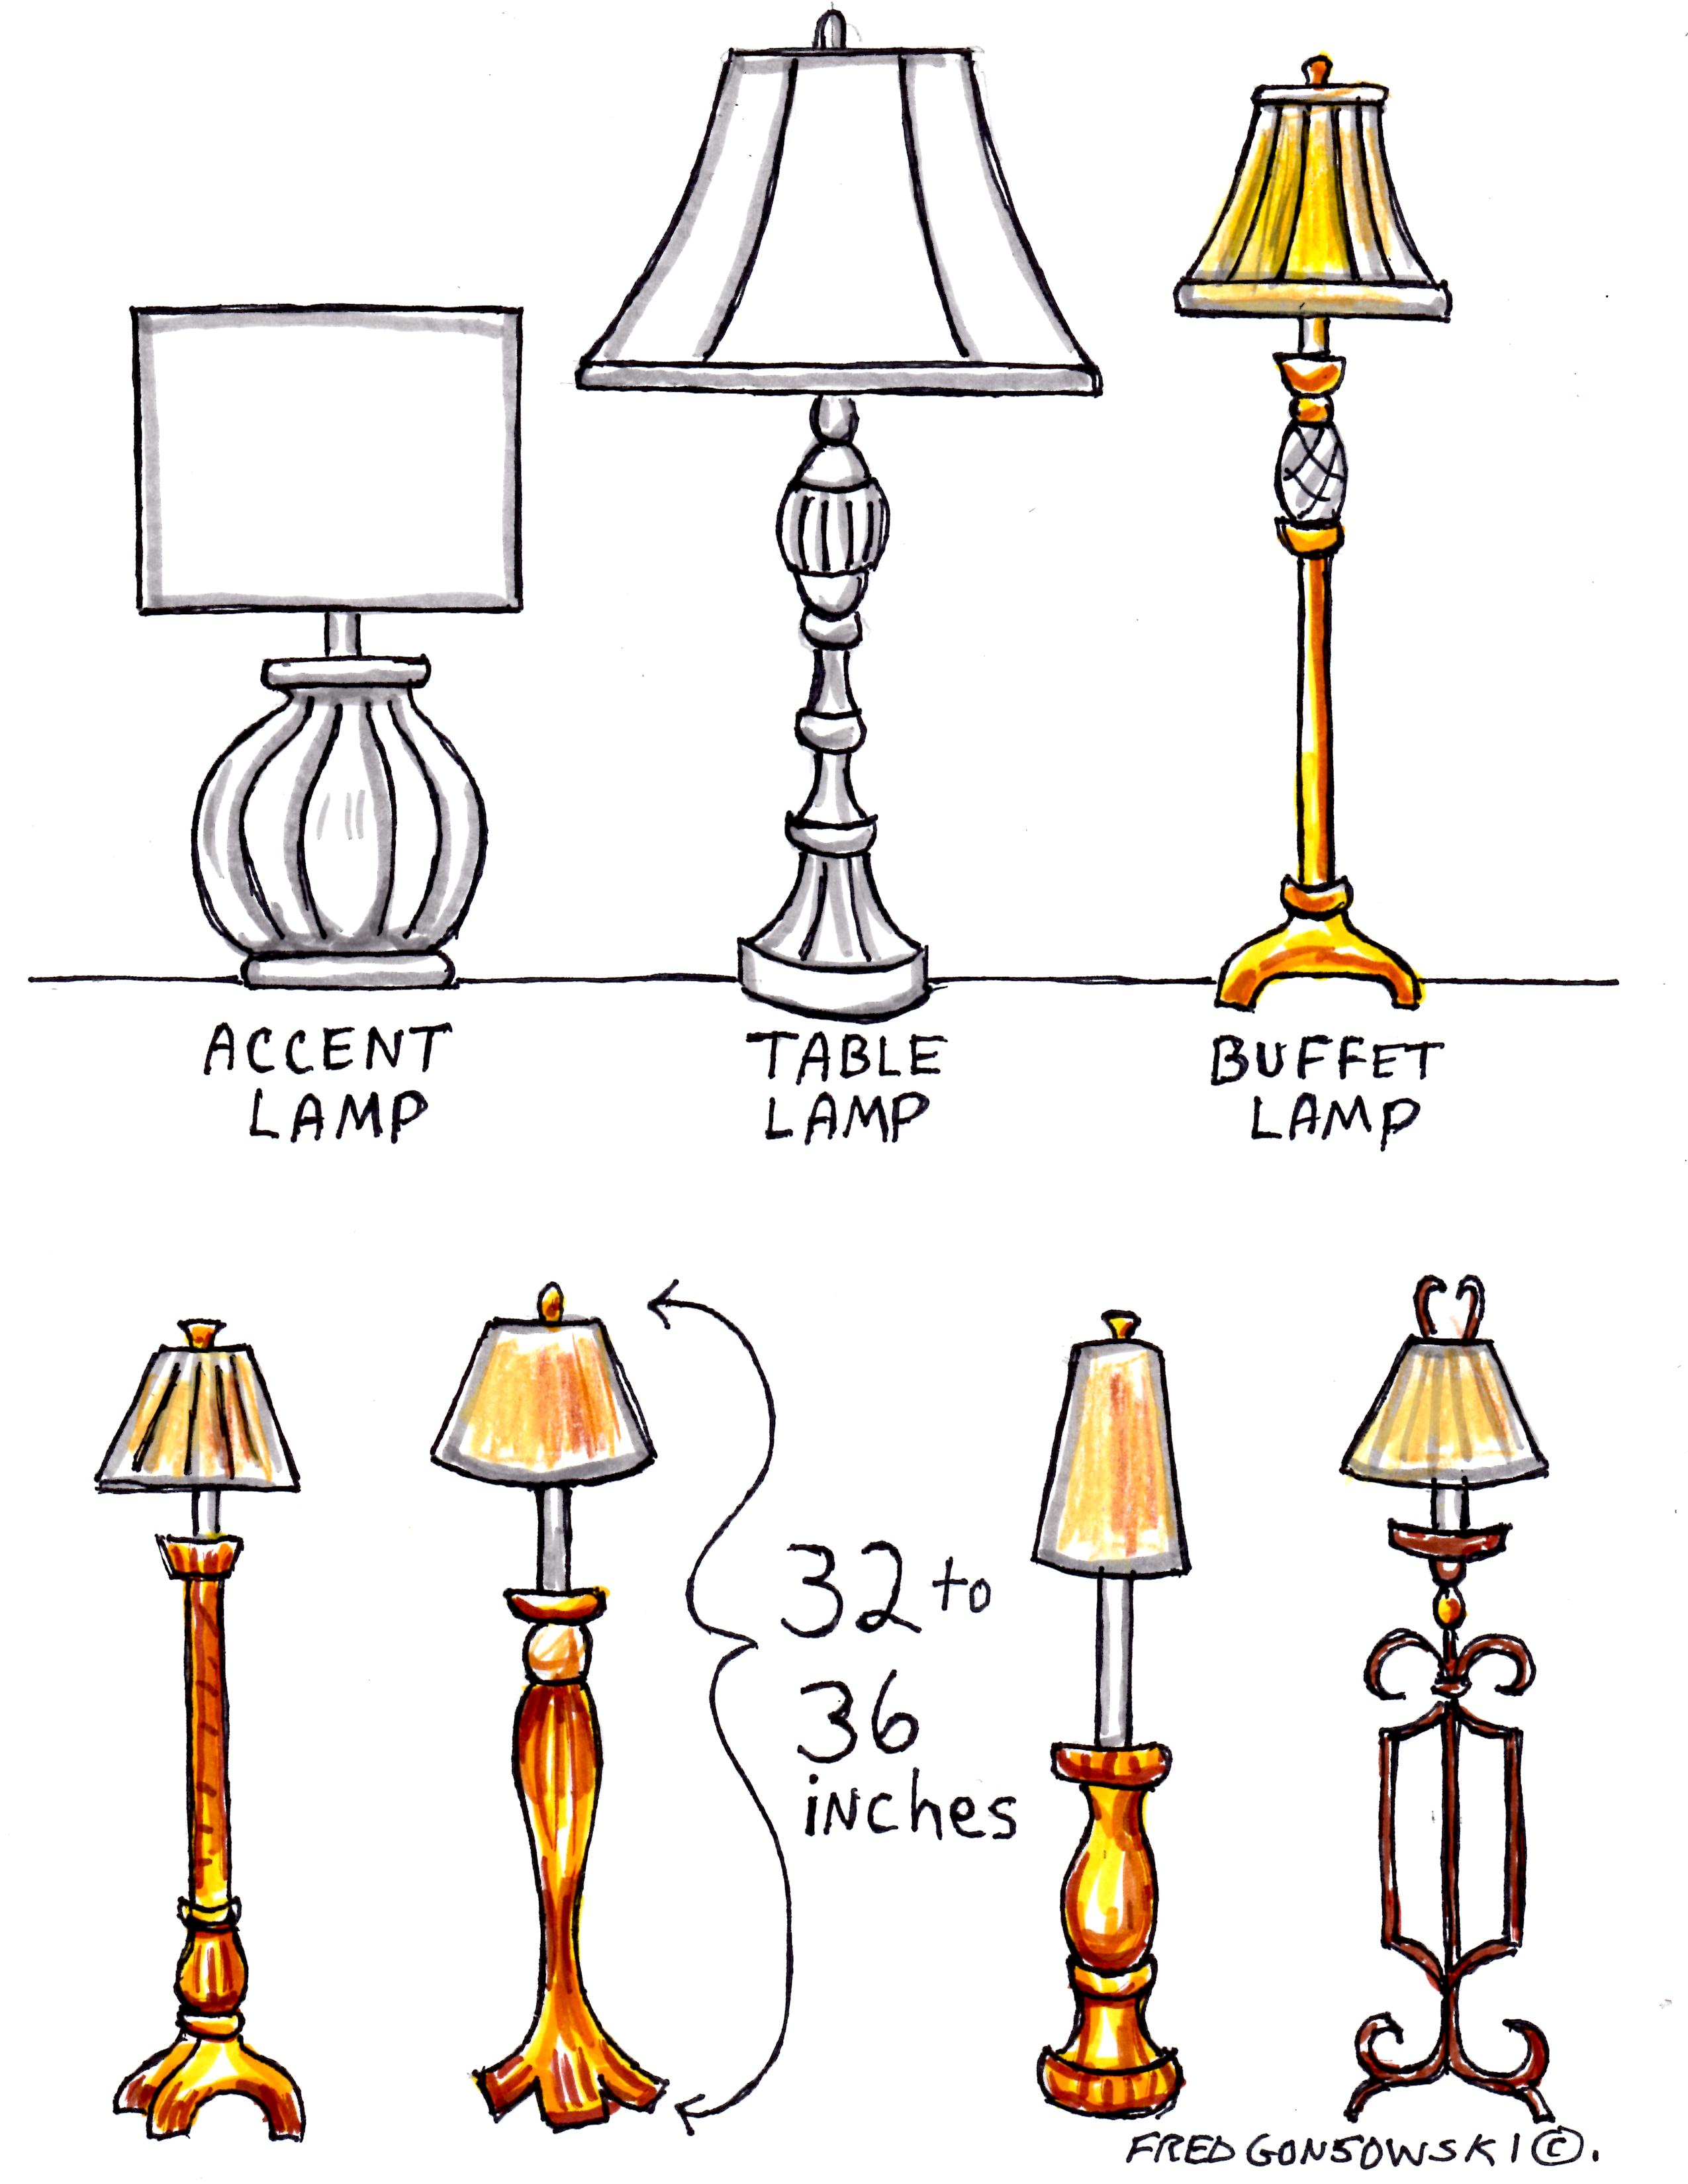 interior decorating with buffet lamps